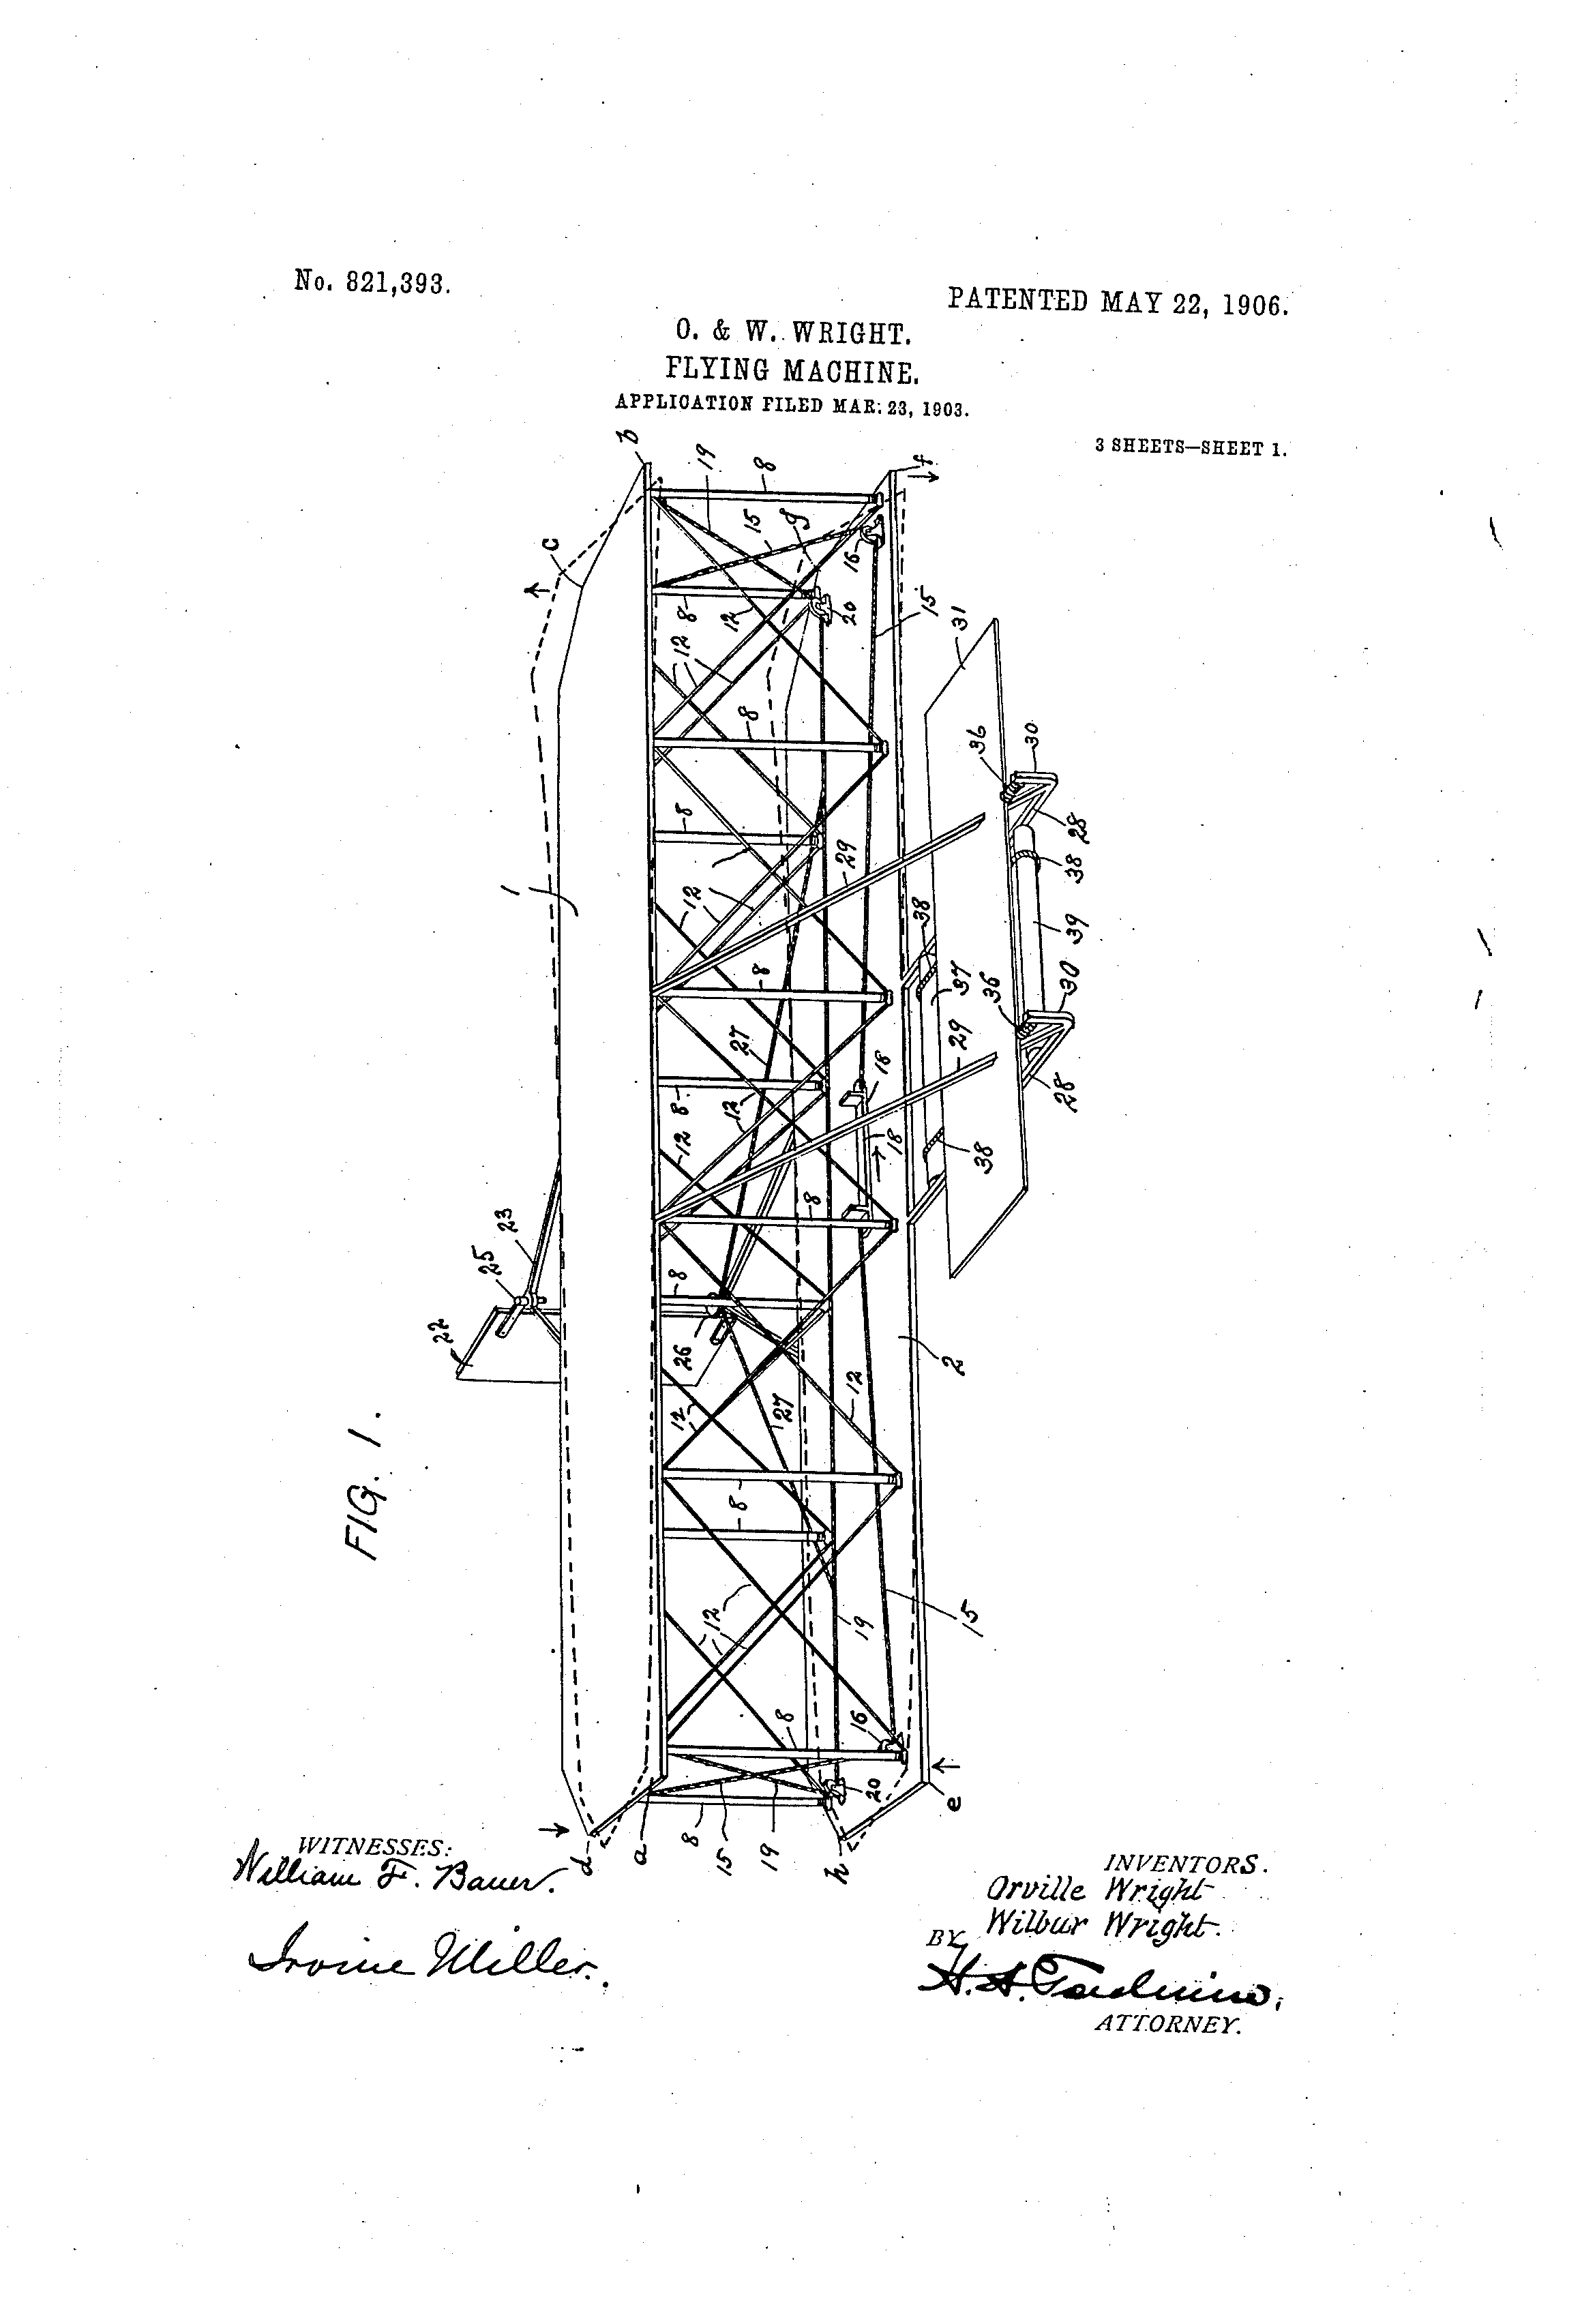 Drawing 1 from patent granted to Orville Wright for a flying machine